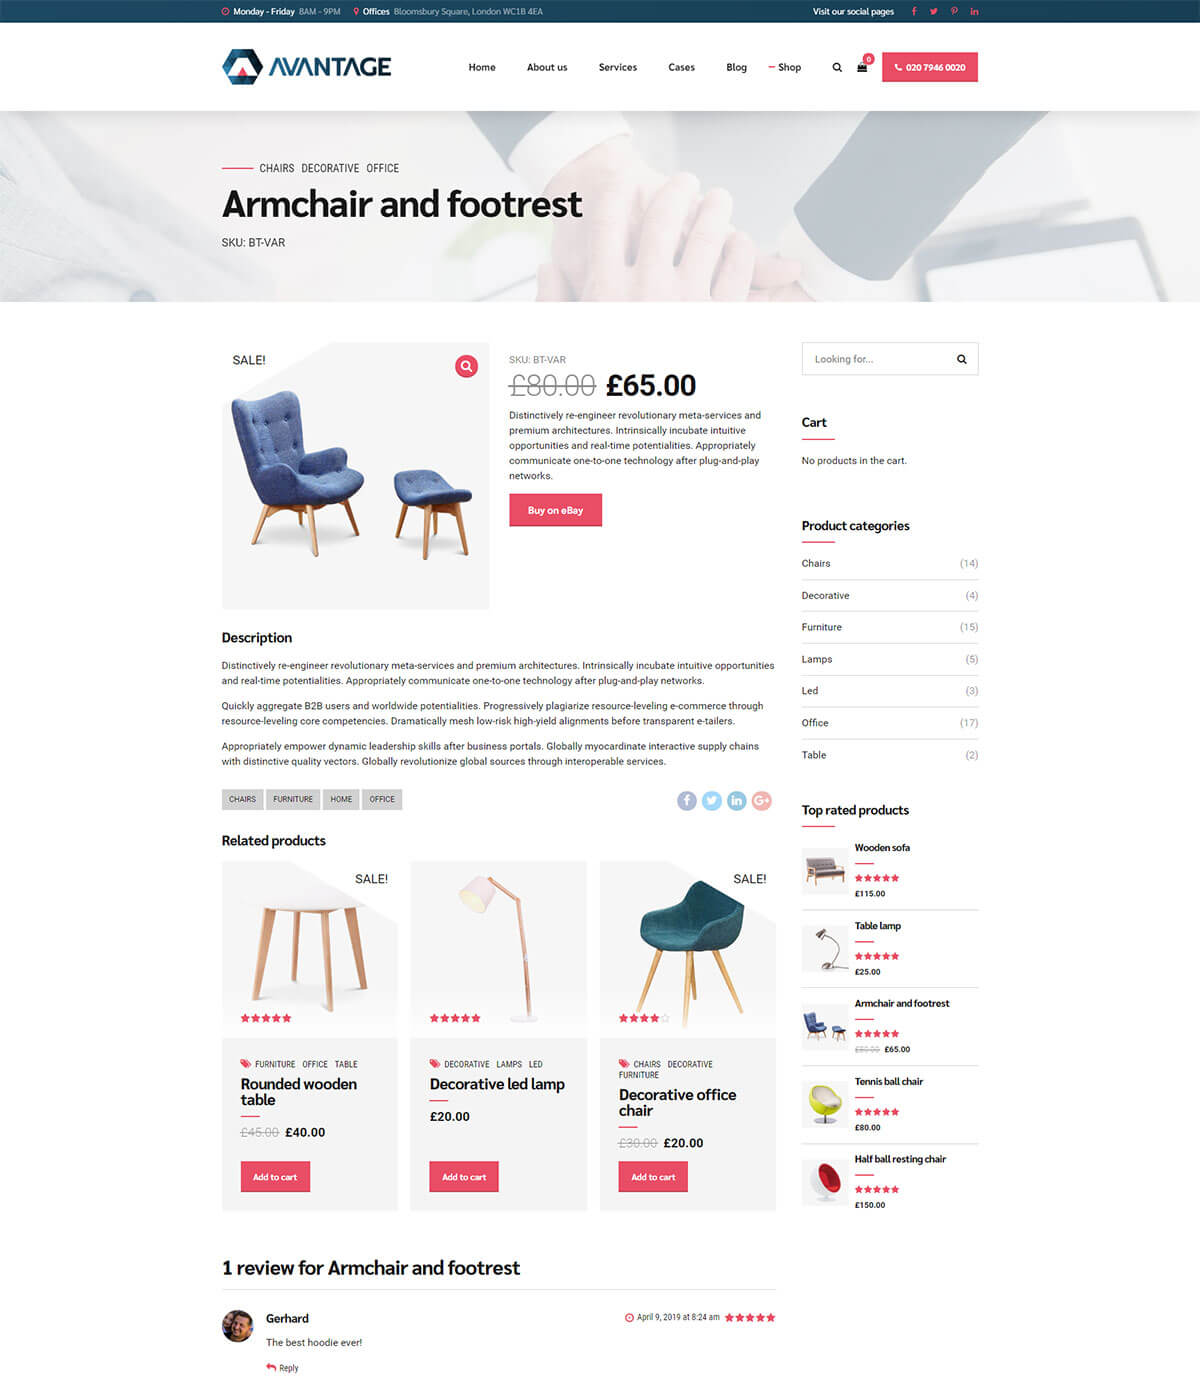 https://avantage.bold-themes.com/wp-content/uploads/2019/05/business-15-product.jpg